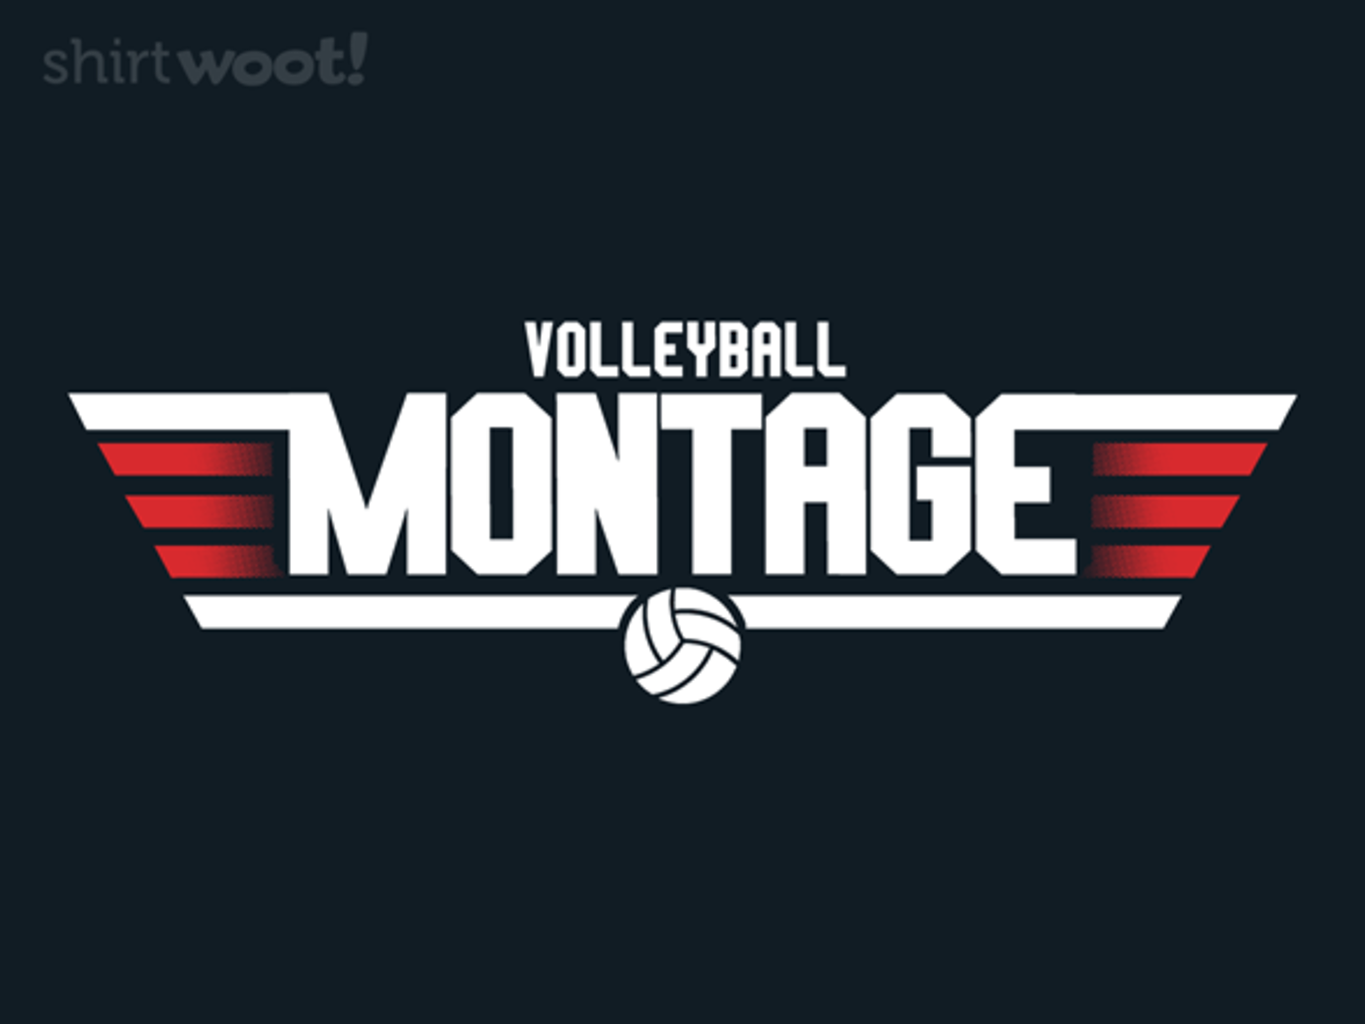 Woot!: Volleyball Montage